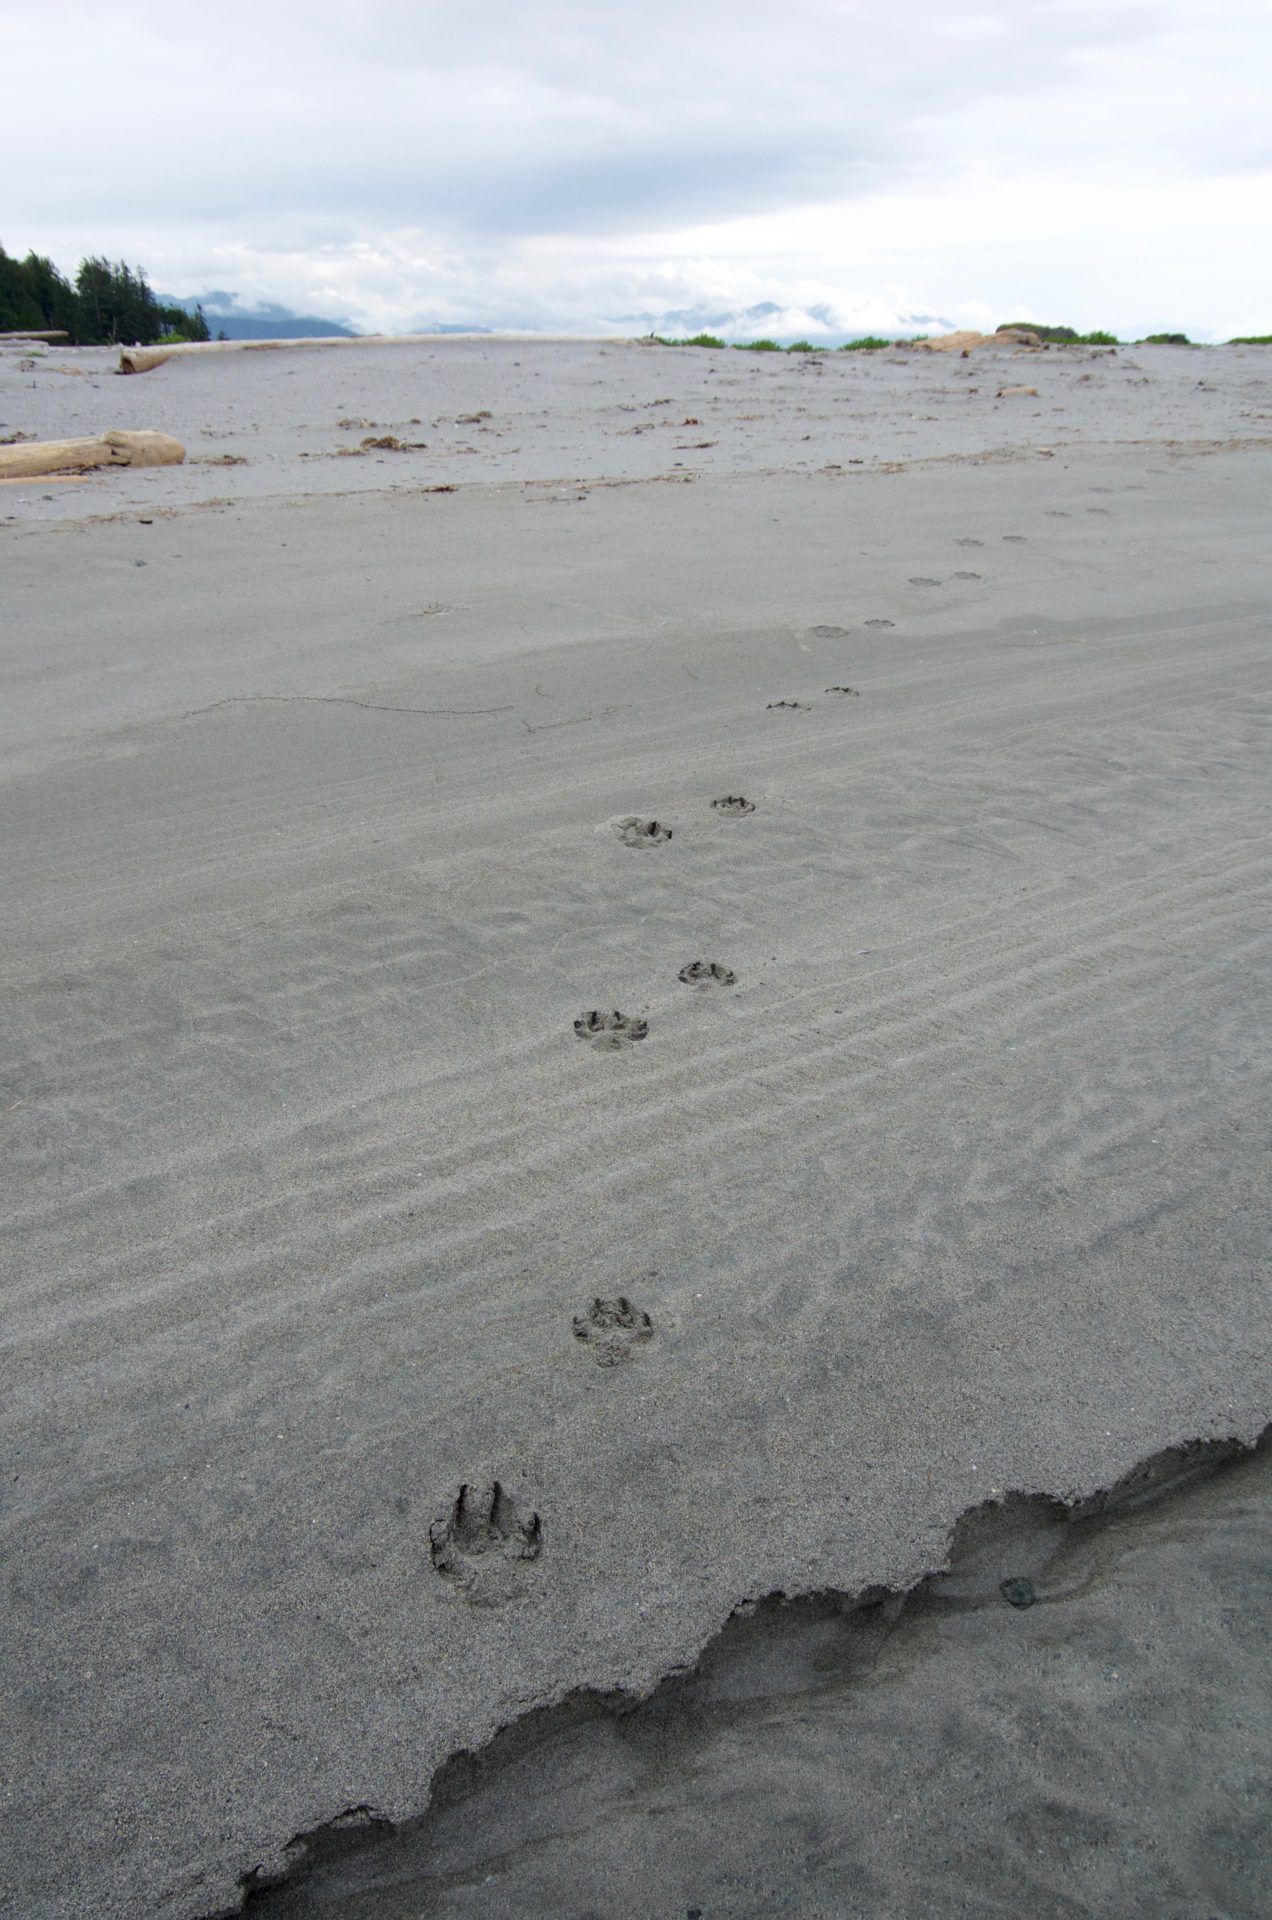 Coastal wolves are a distinct population found only along BC's coast. Photo by iStock.